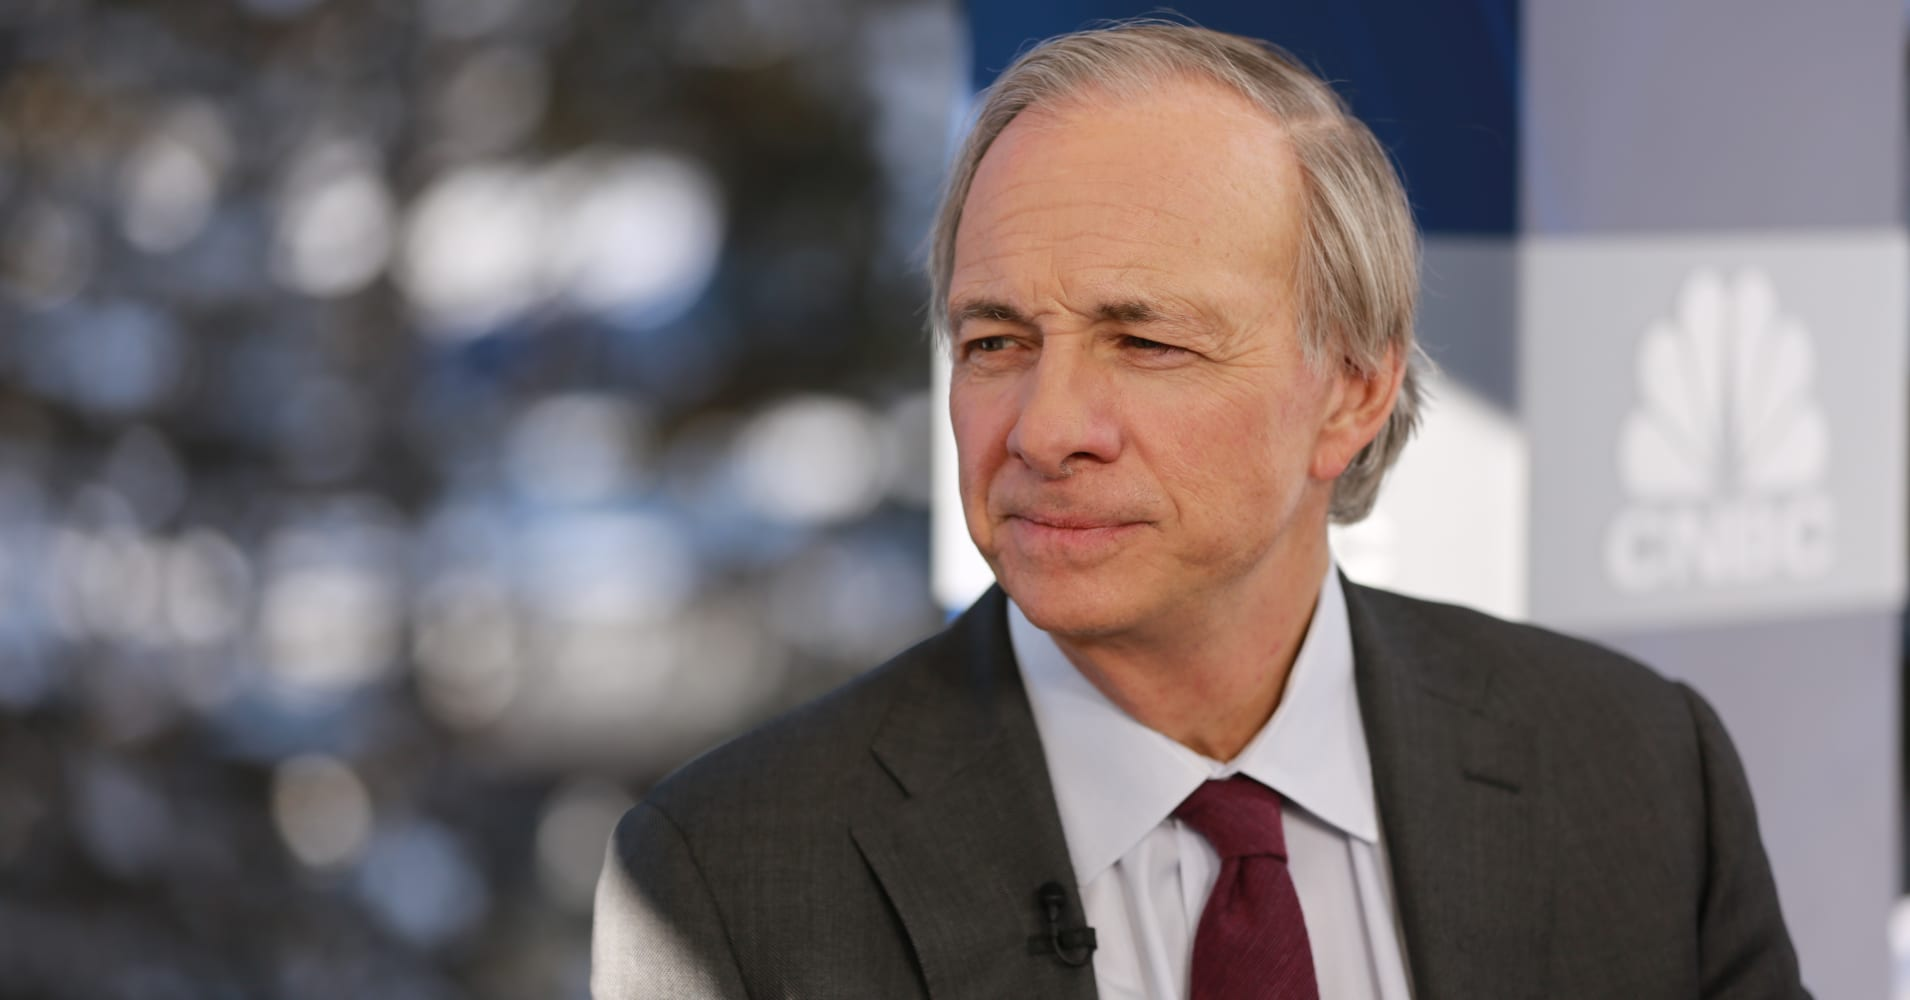 The next economic downturn scares billionaire hedge fund founder Ray Dalio